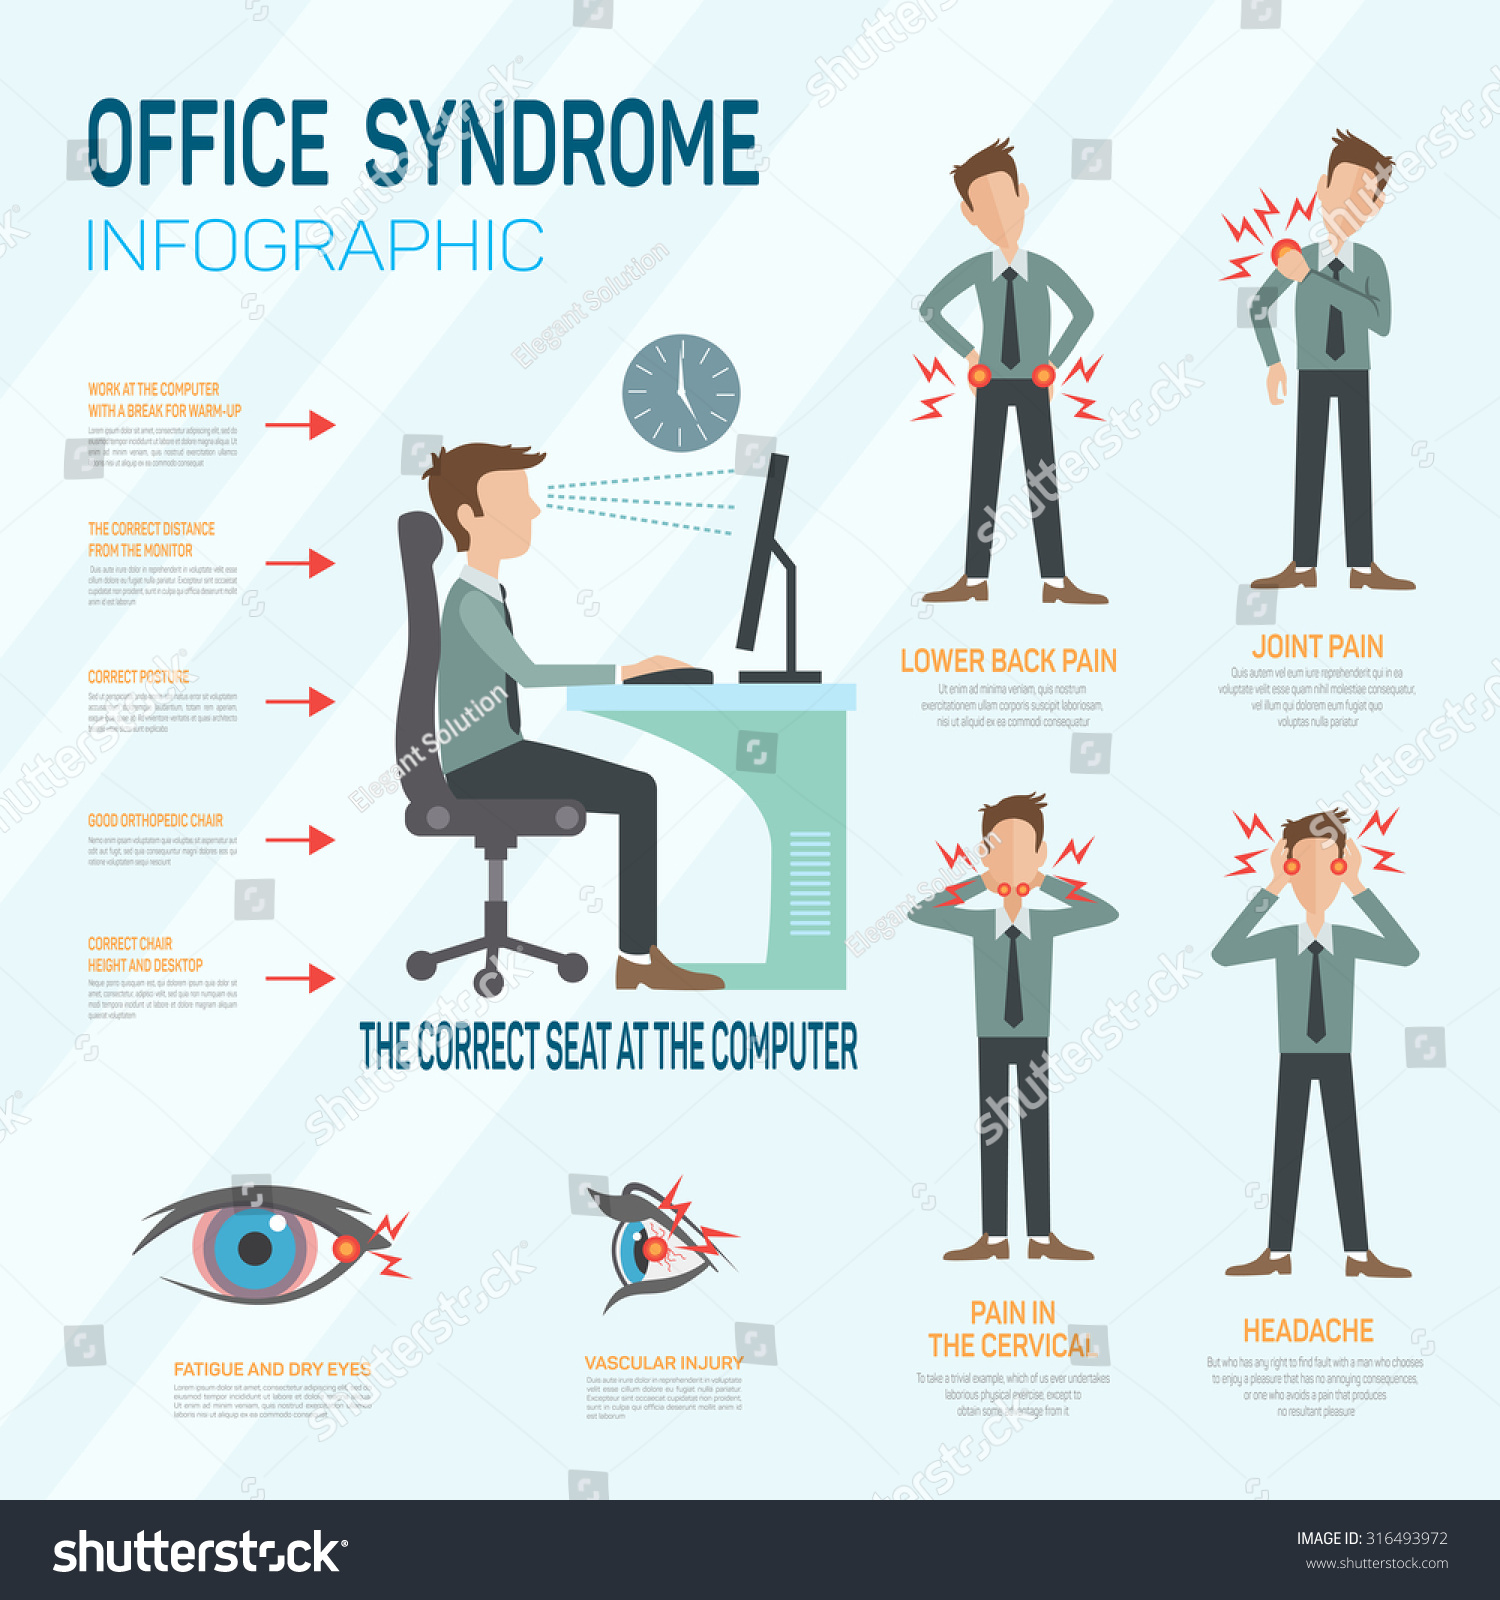 Infographic Office Syndrome Template Design Concept